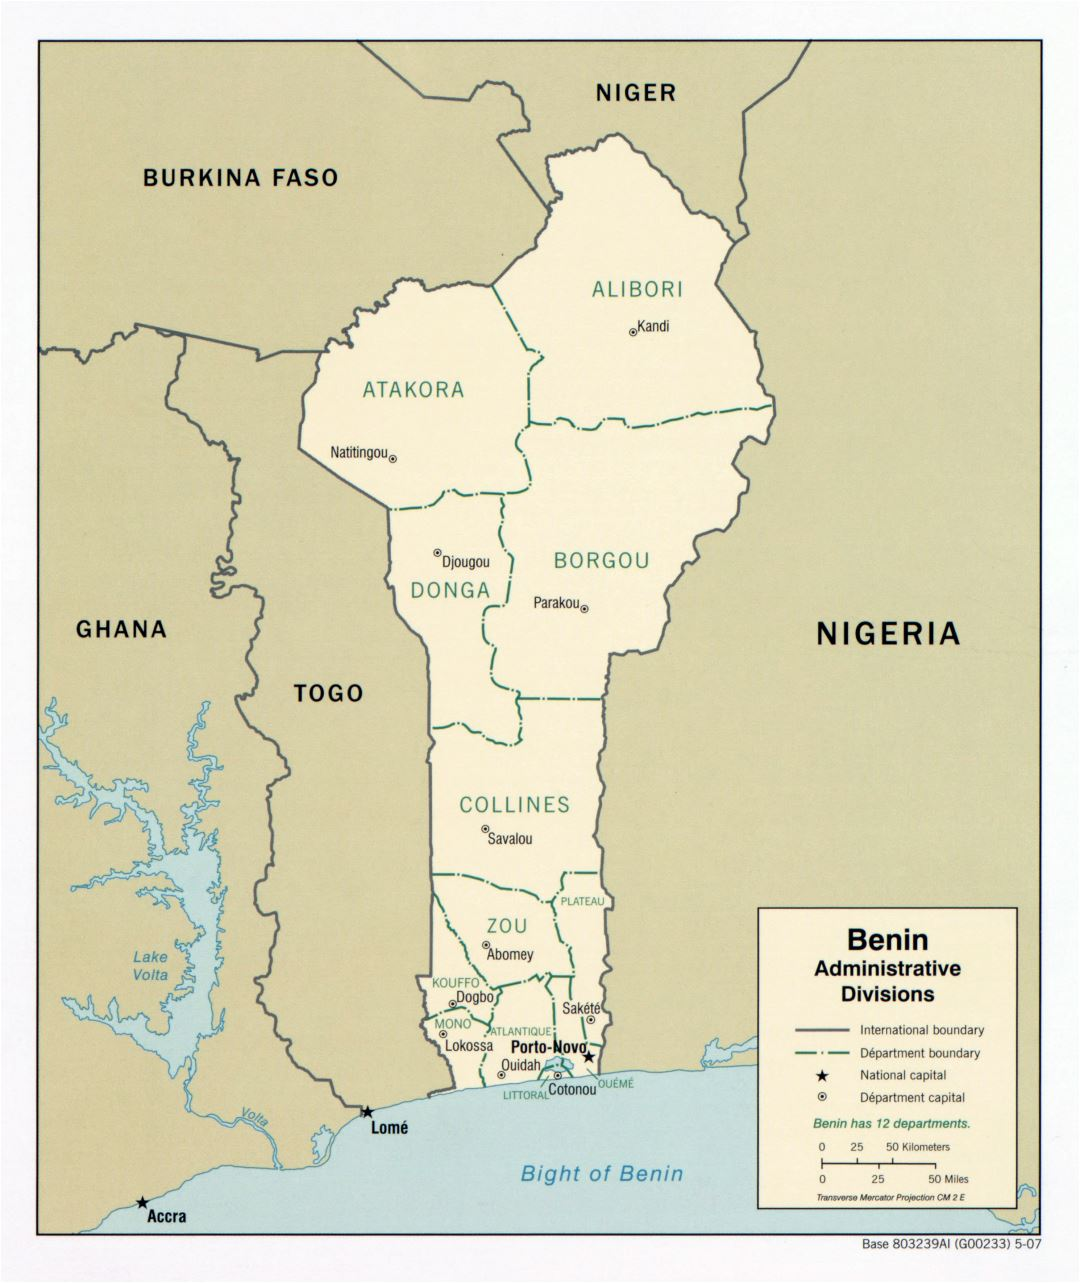 Large scale administrative divisions map of Benin - 2007